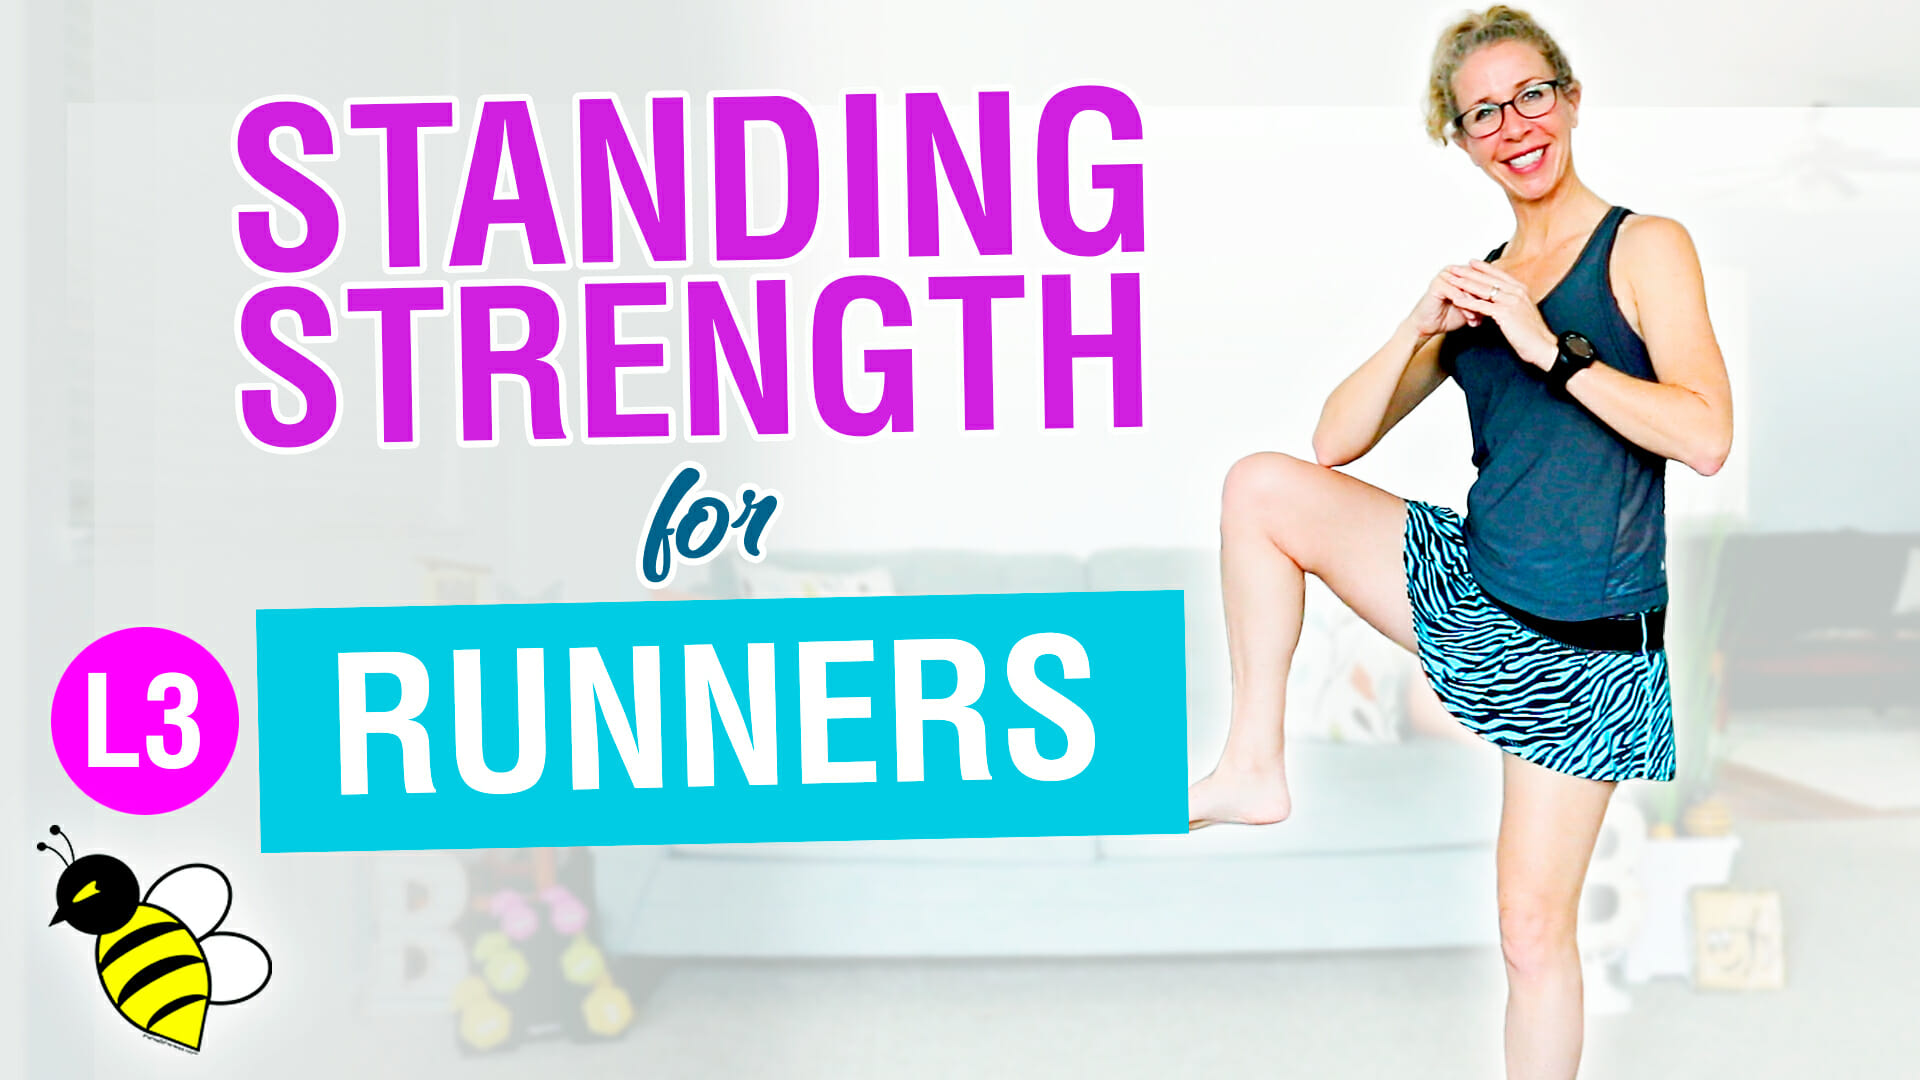 PR STRONG 10 minute STANDING GLUTES + ABS workout for RUNNERS